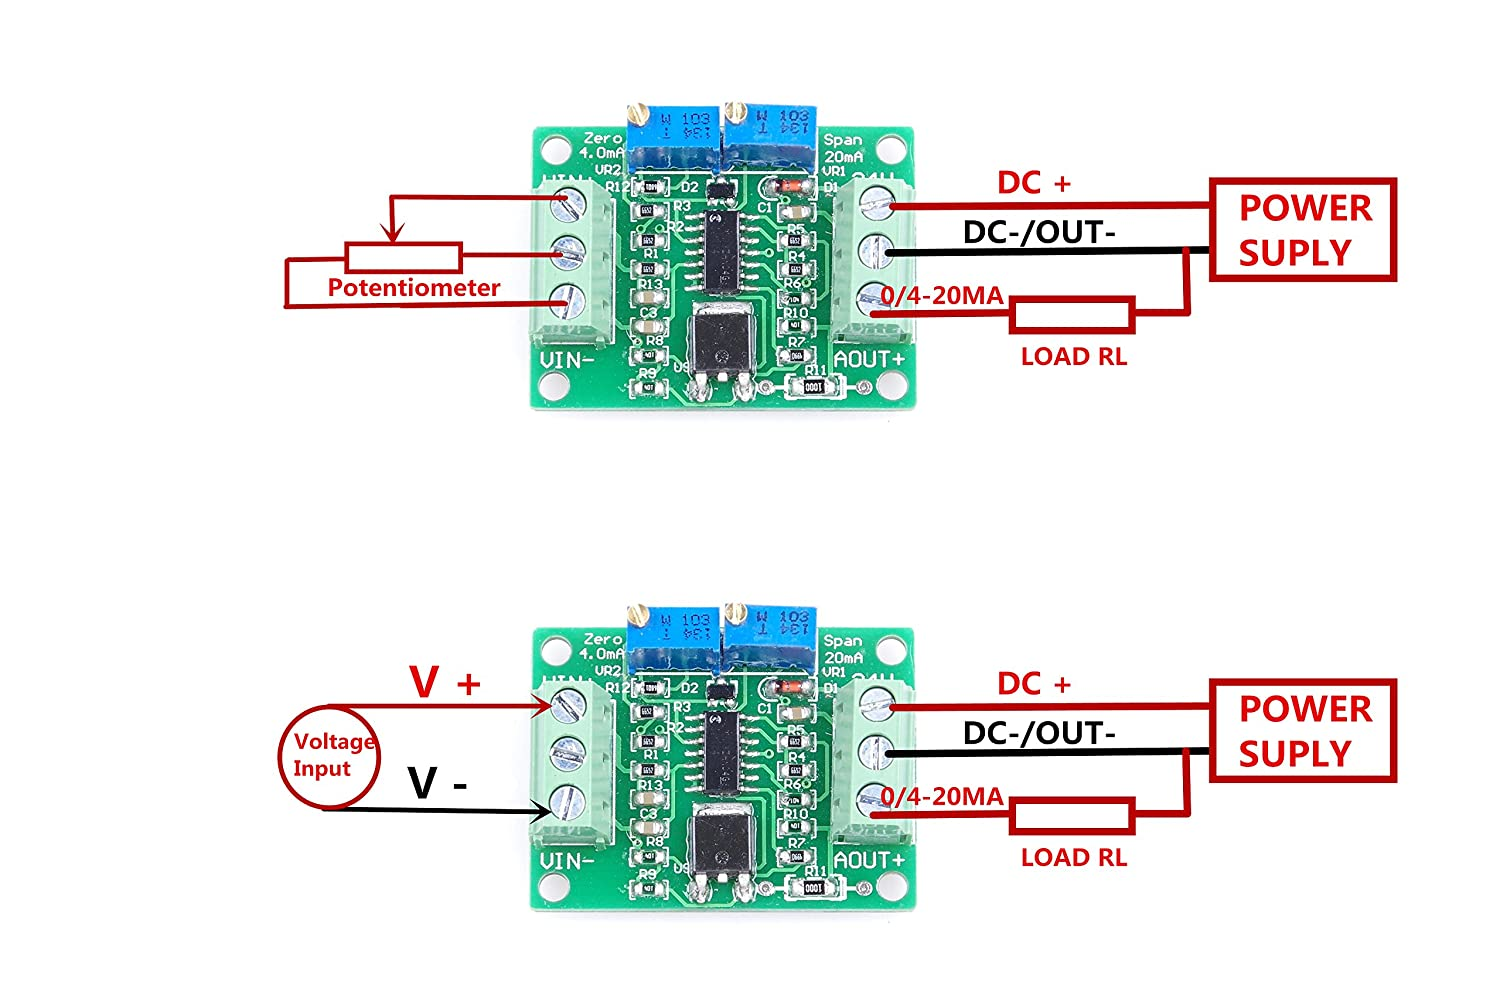 Knacro Voltage To Current Module 0 25v 33v 5v 10v 15v Simple Currenttovoltage Converter Circuit Diagram Electronic 24v Conversion 20ma 4 Home Audio Theater